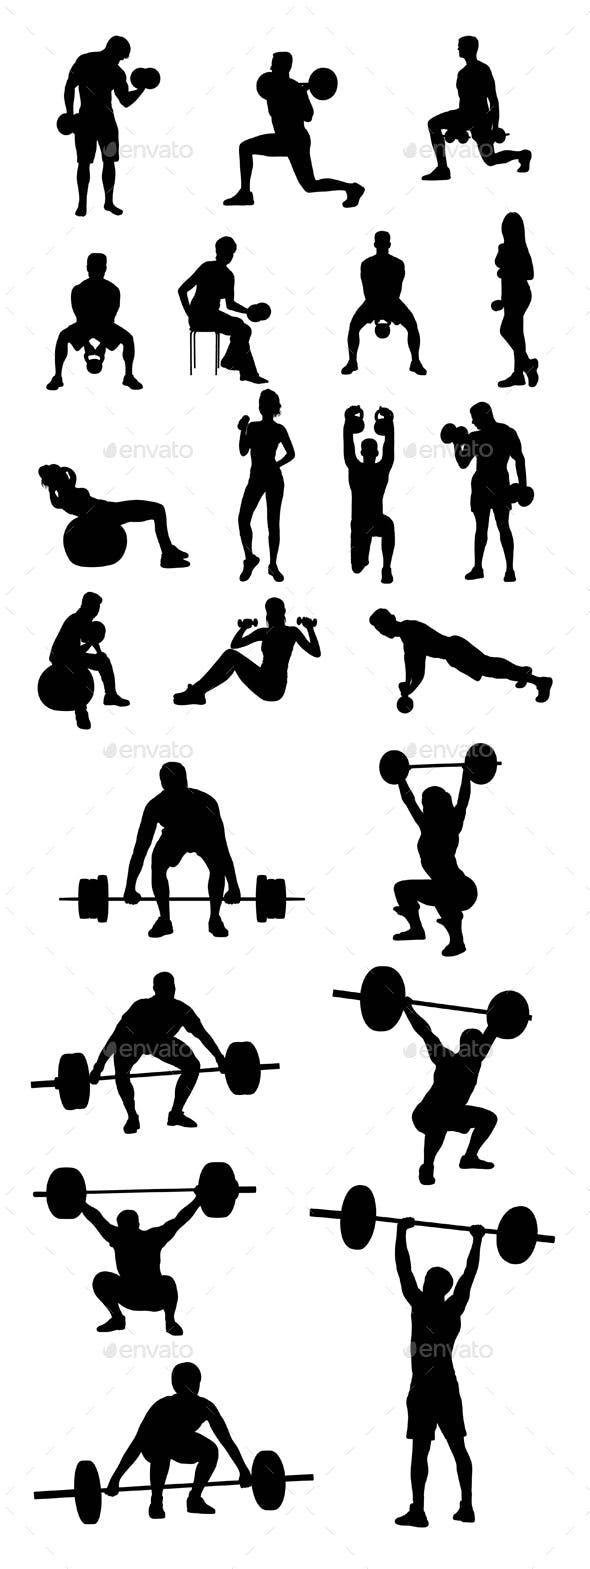 Dumbbell Exercises and Weightlifter Silhouettes - Sports/Activity Conceptual #dumbbellexercises Dumbbell Exercises and Weightlifter Silhouettes - Sports/Activity Conceptual #dumbbellexercises